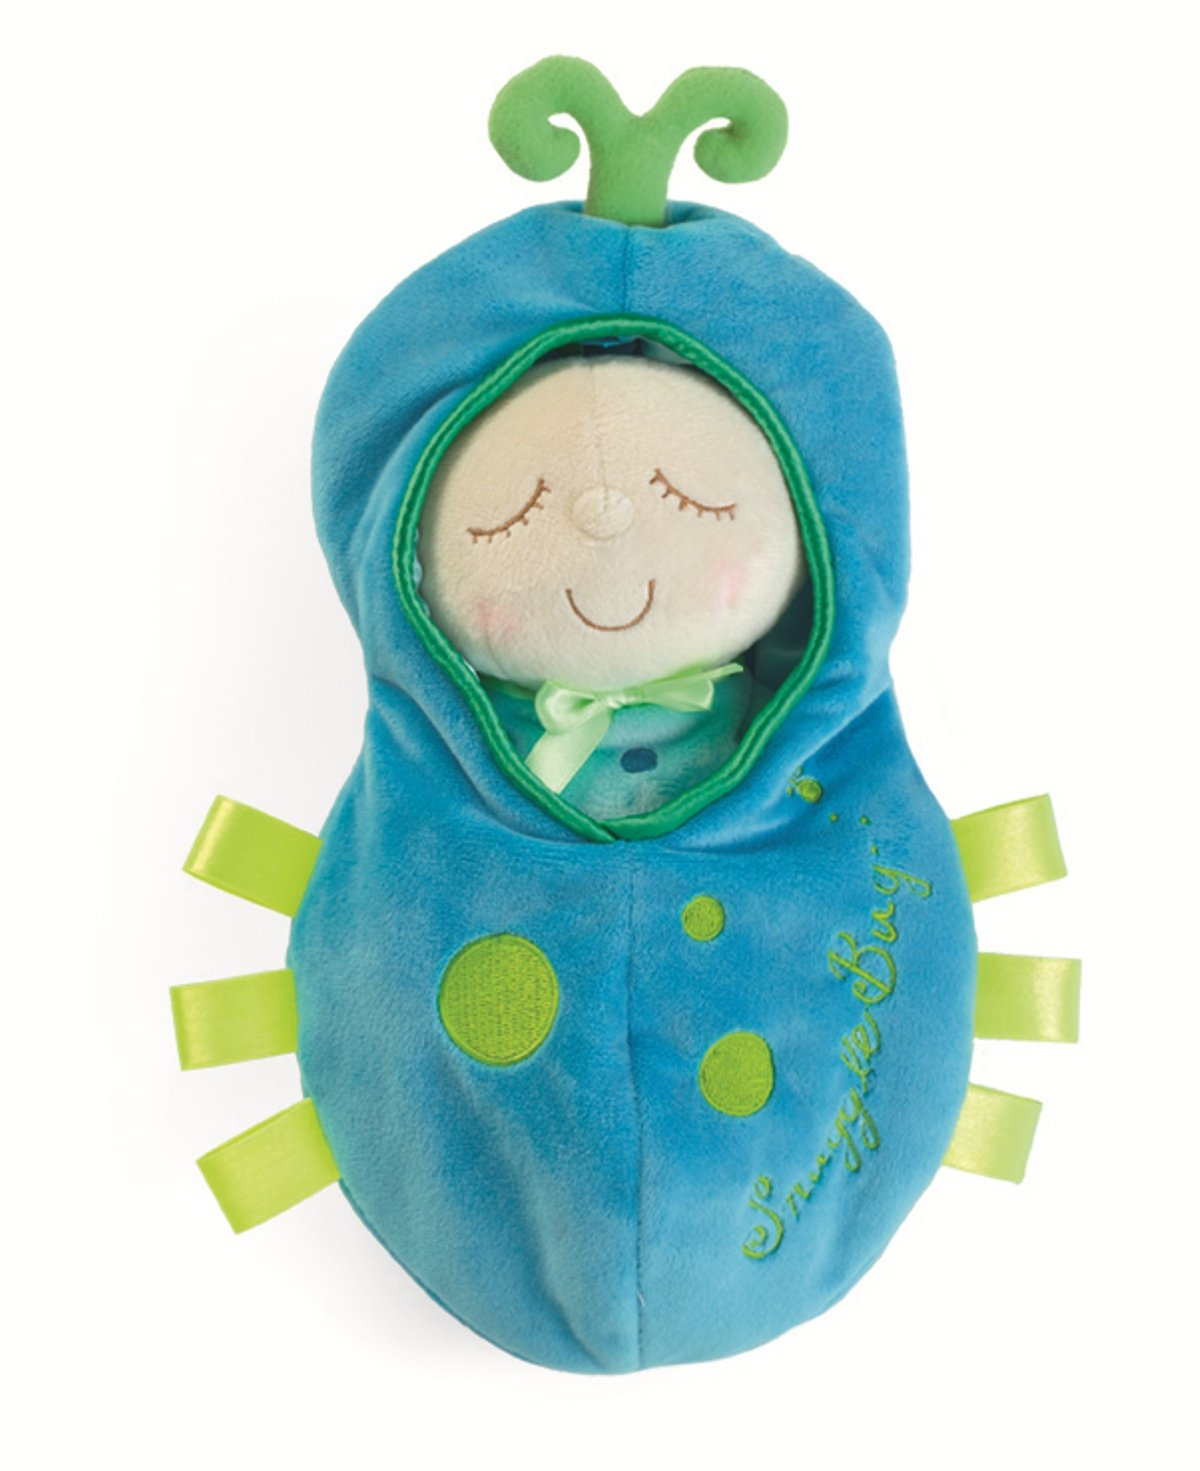 Manhattan Toy Snuggle Pod Lil Peanut First Baby Doll with Cozy Sleep Sack for Ages 6 Months and Up